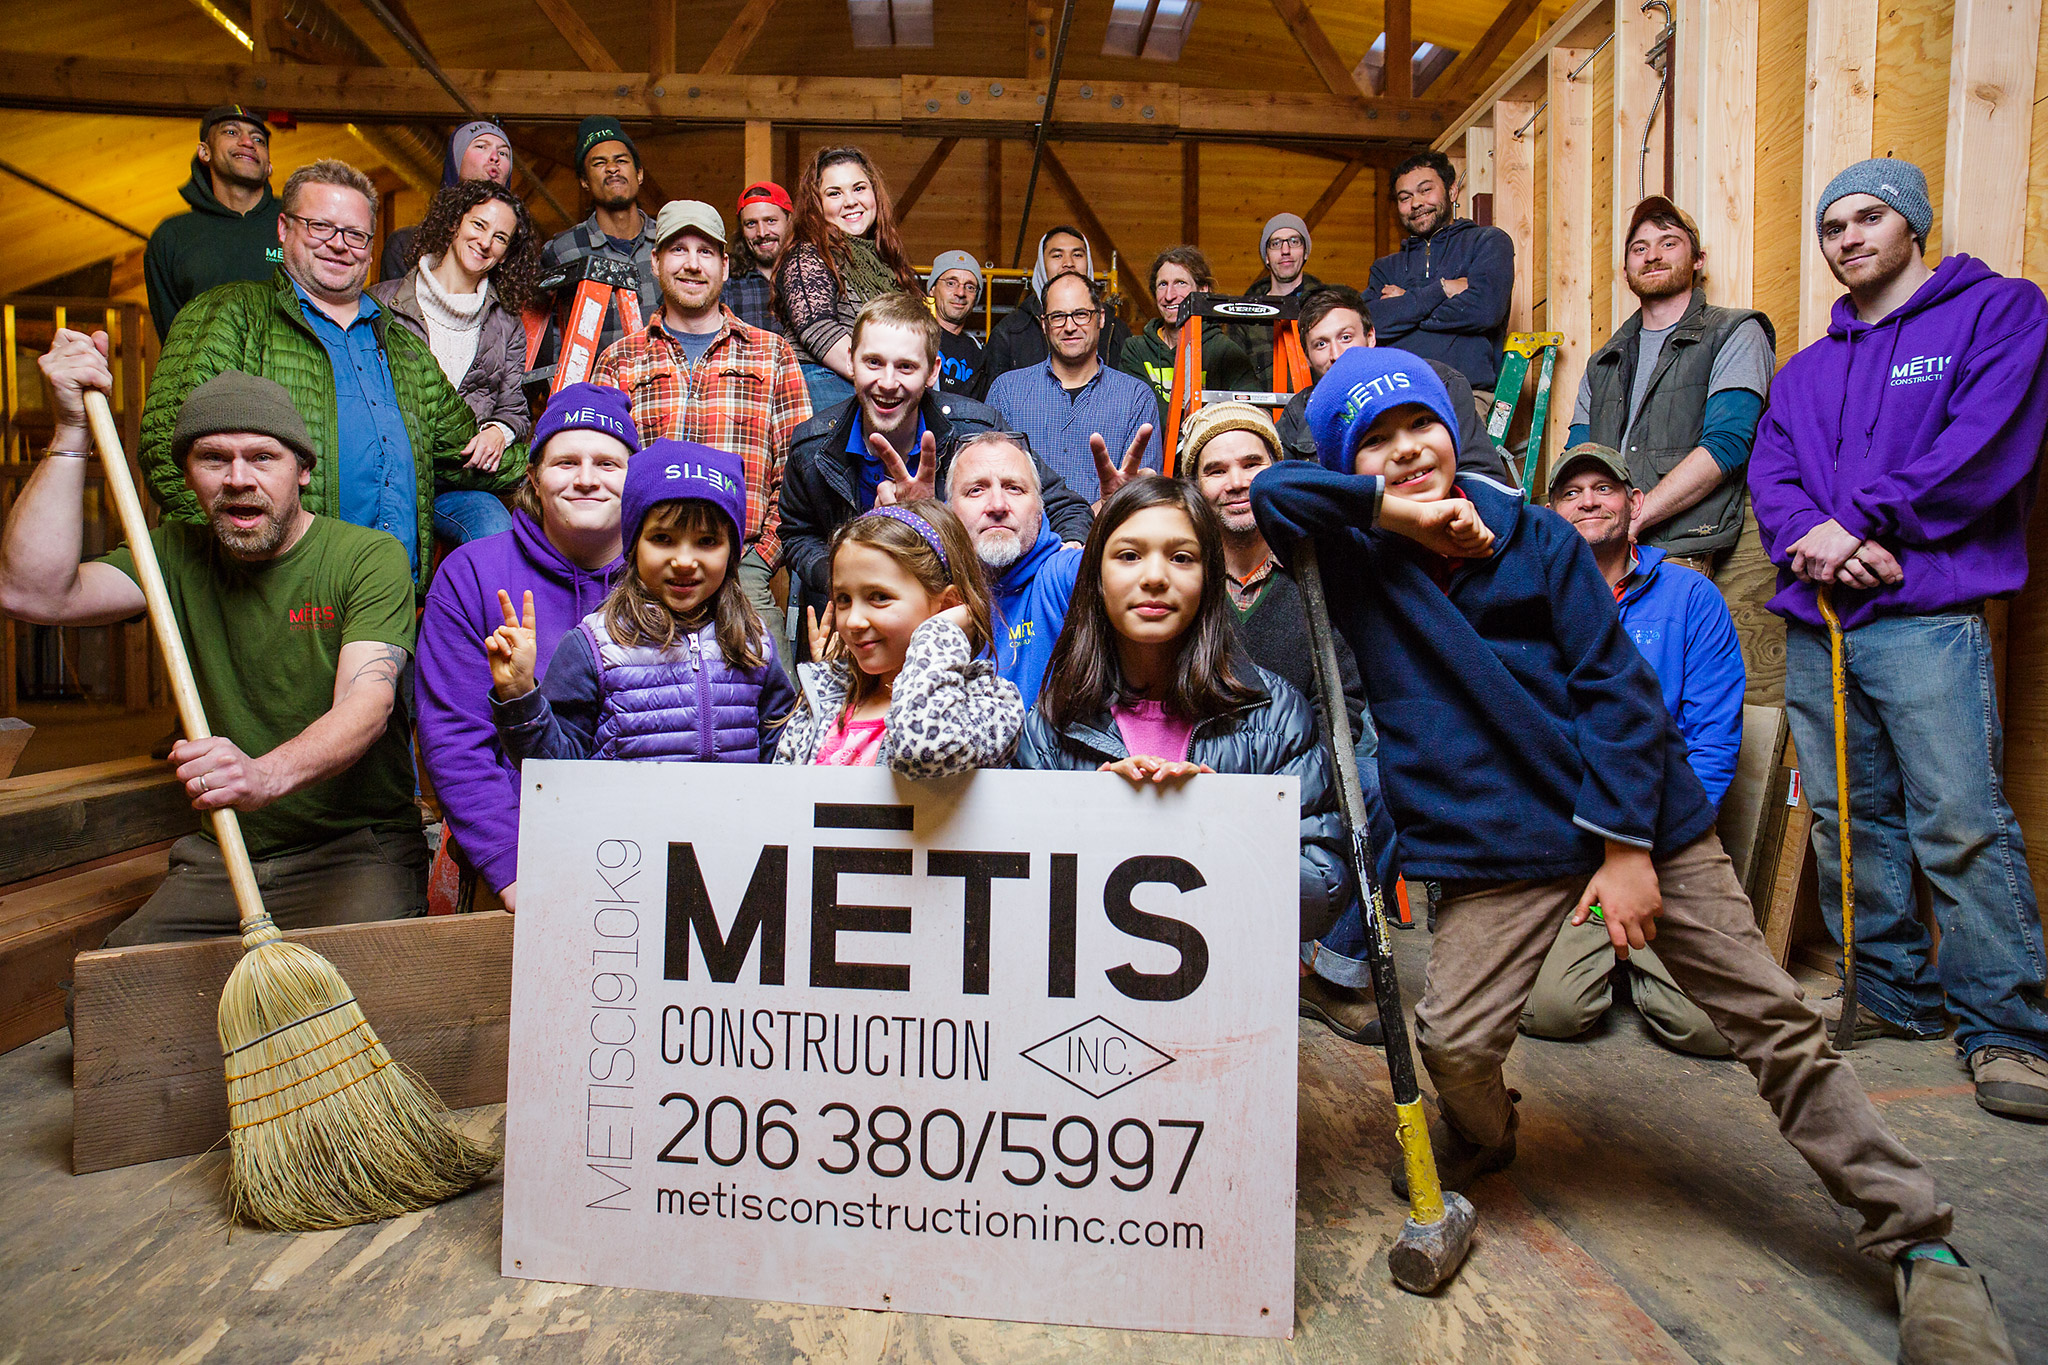 Metis Construction  is a worker cooperative formed out of CIE's Cooperative Academy in 2015. CIE partnered with over 50 organizations and was supported with funding from the Small Business Association to offer this innovative programming. Metis Construction offers residential and commercial building services, and their worksites can be found all over Seattle. Learn more about their conversion to a cooperative  in this nice article.